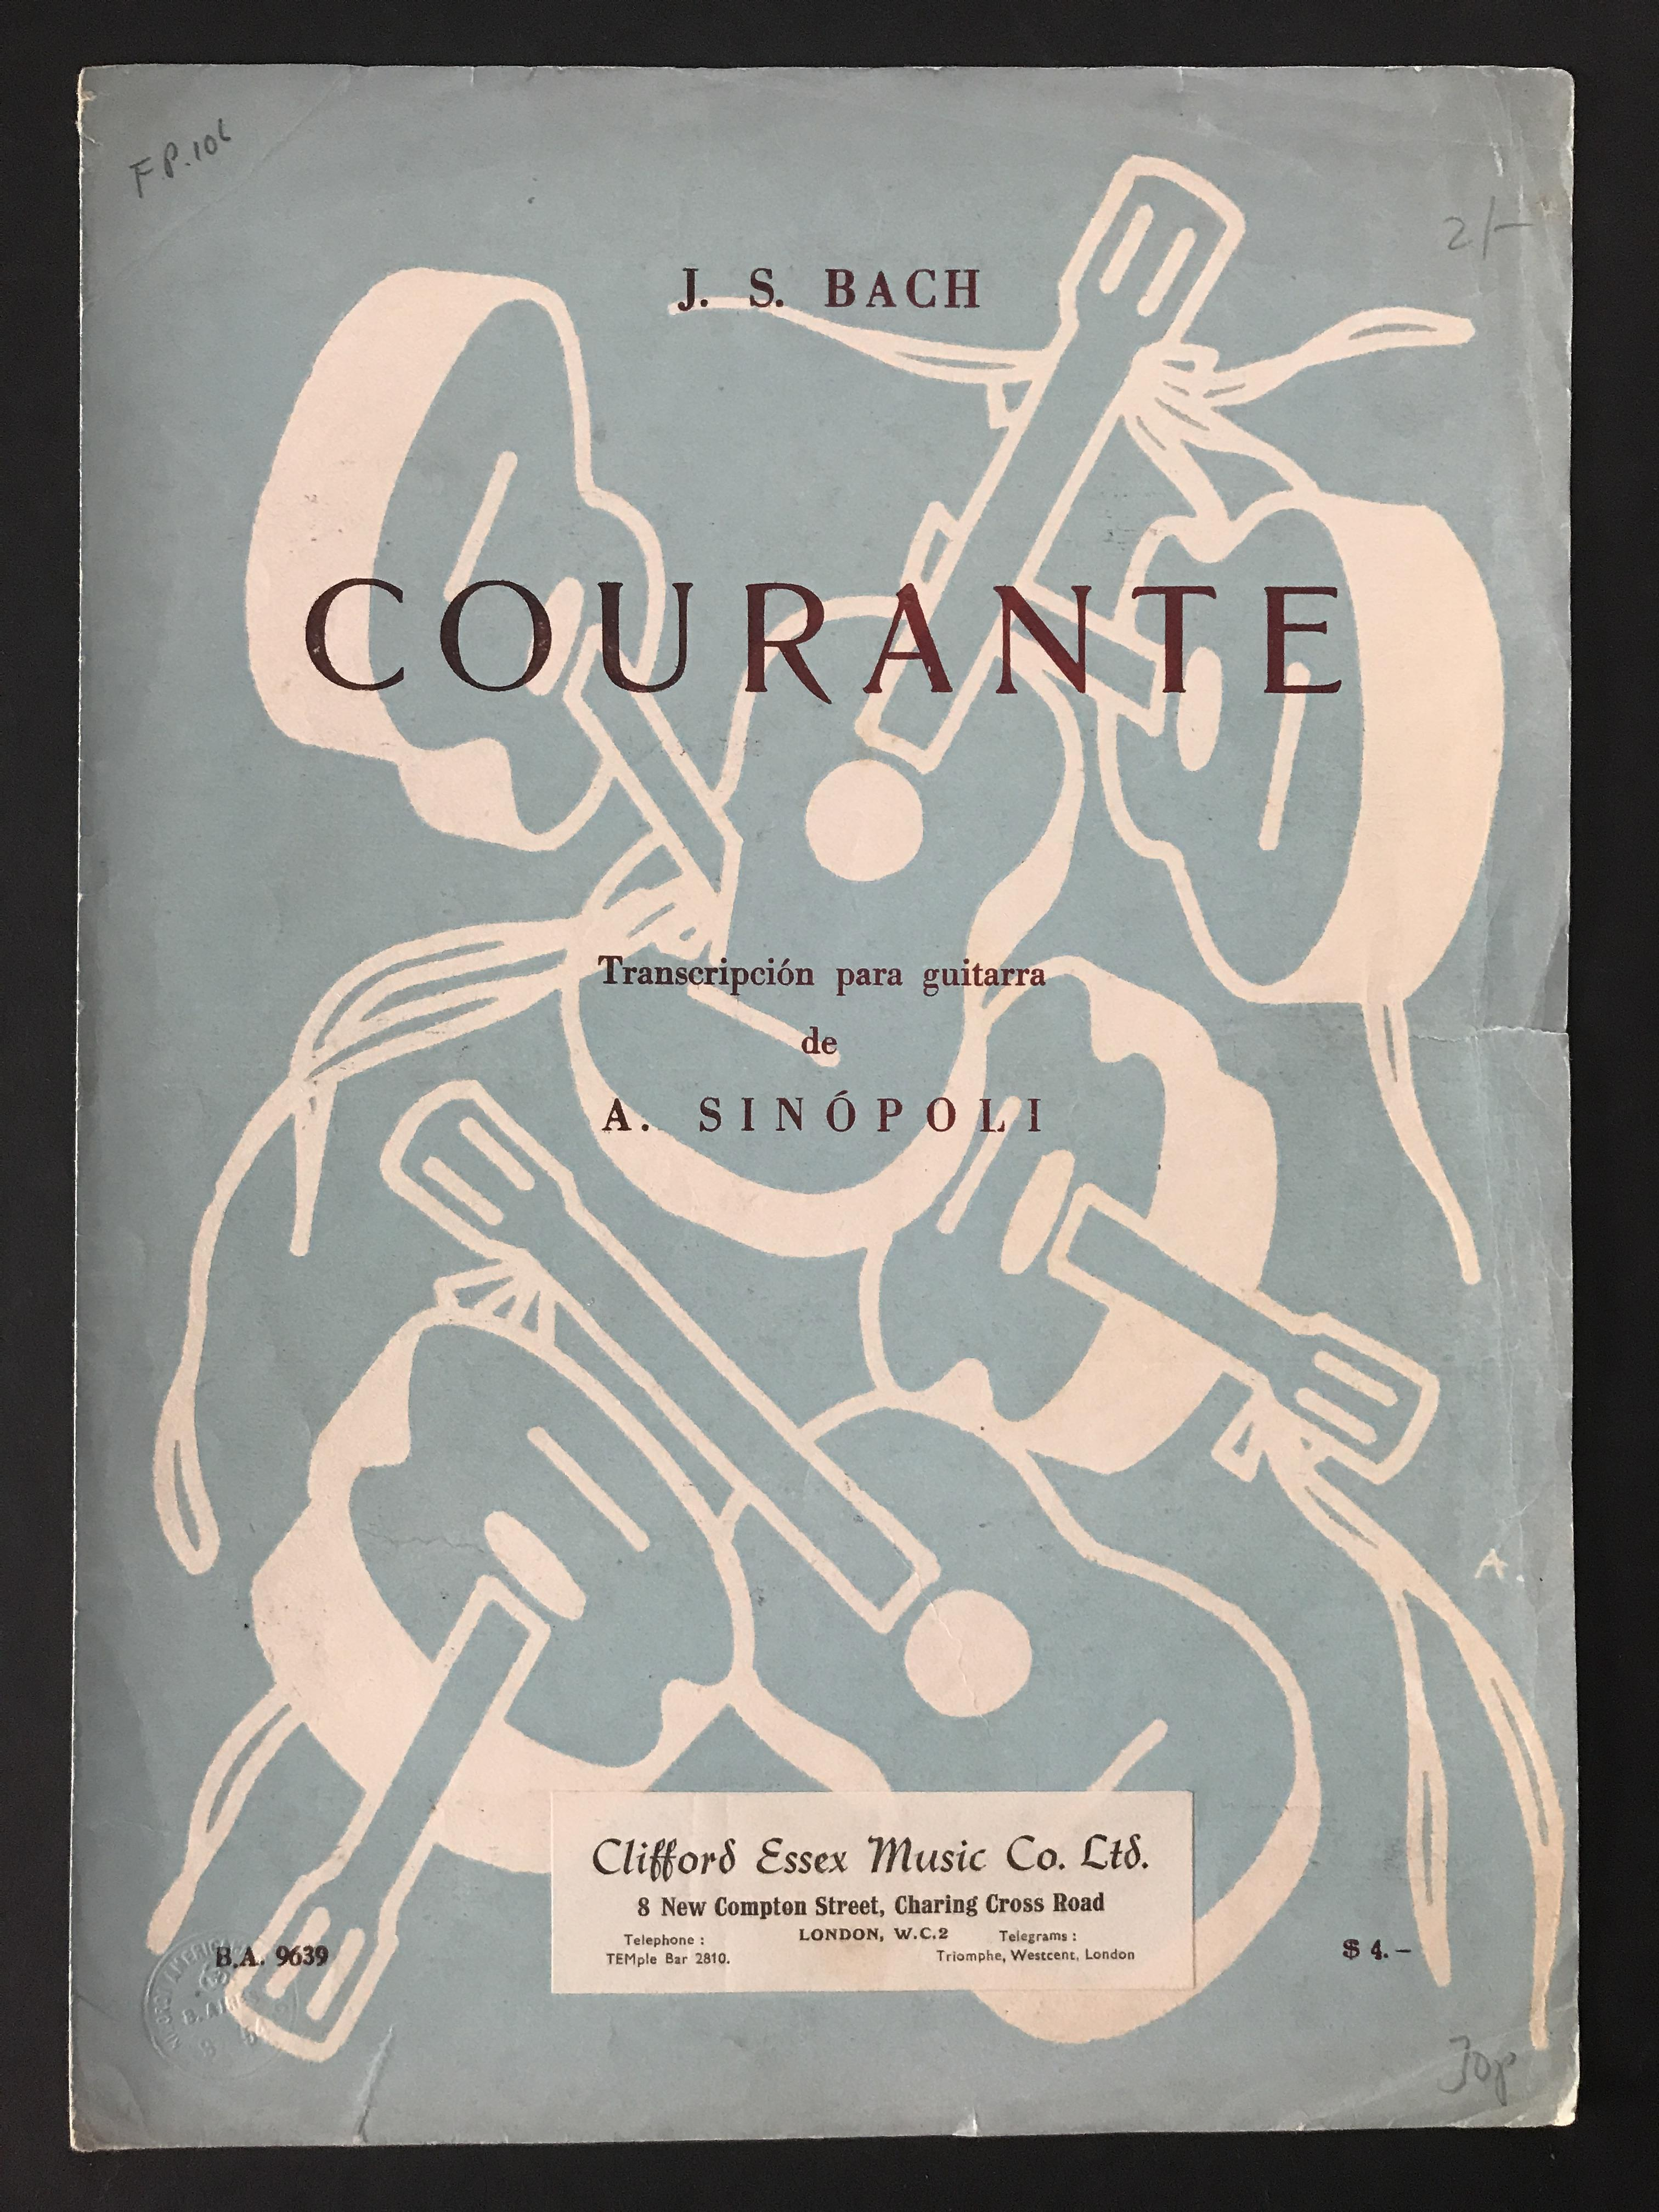 Courante by J. S. Bach